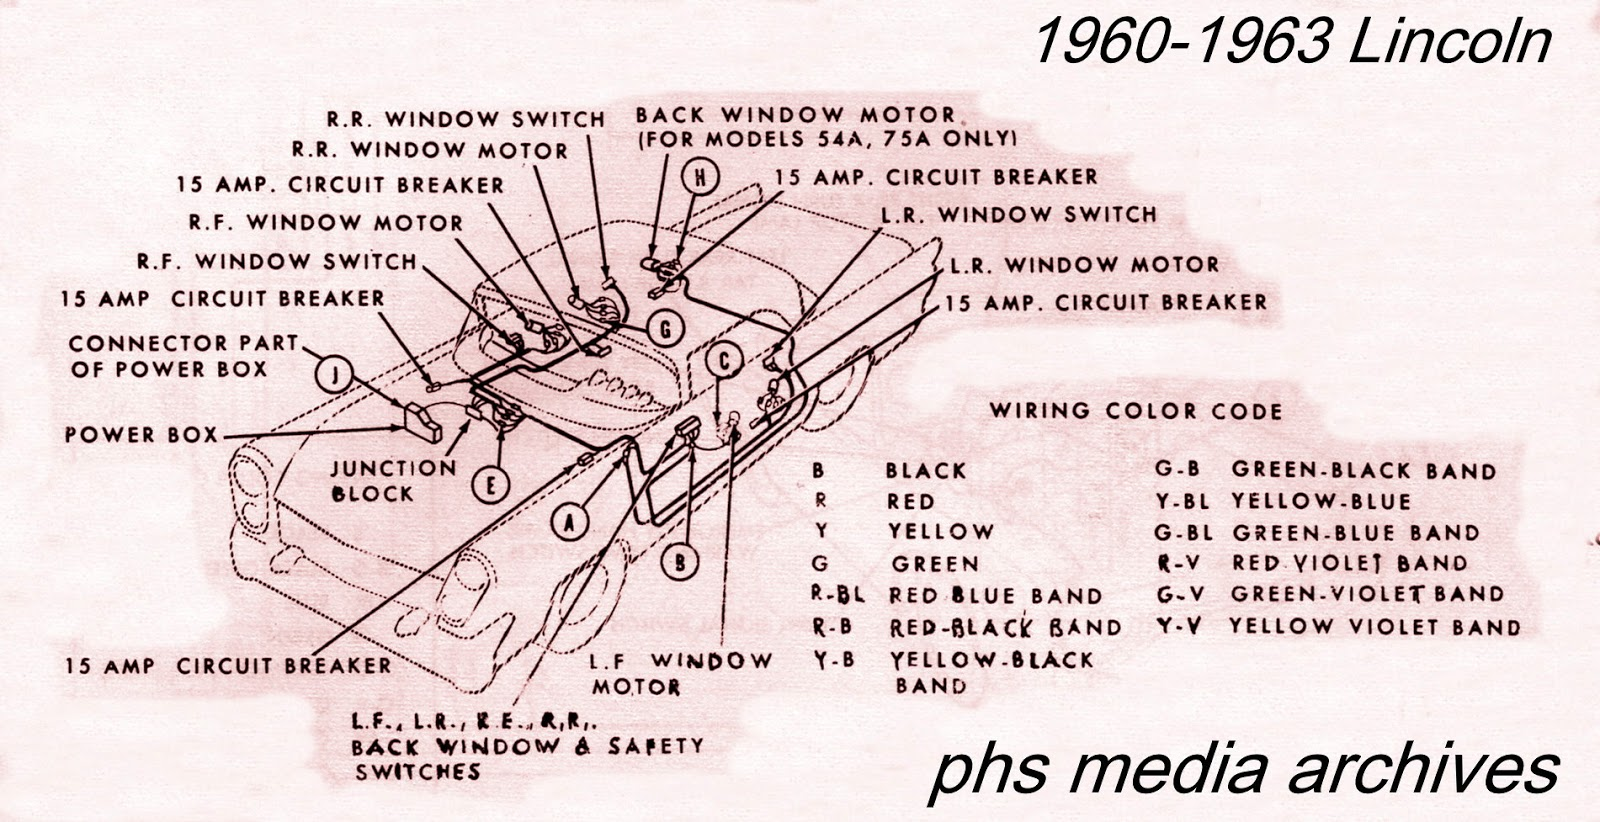 linc%2Ba237 tech series 1960 1964 lincoln wiring diagrams phscollectorcarworld lincoln auto greaser wiring diagram at aneh.co